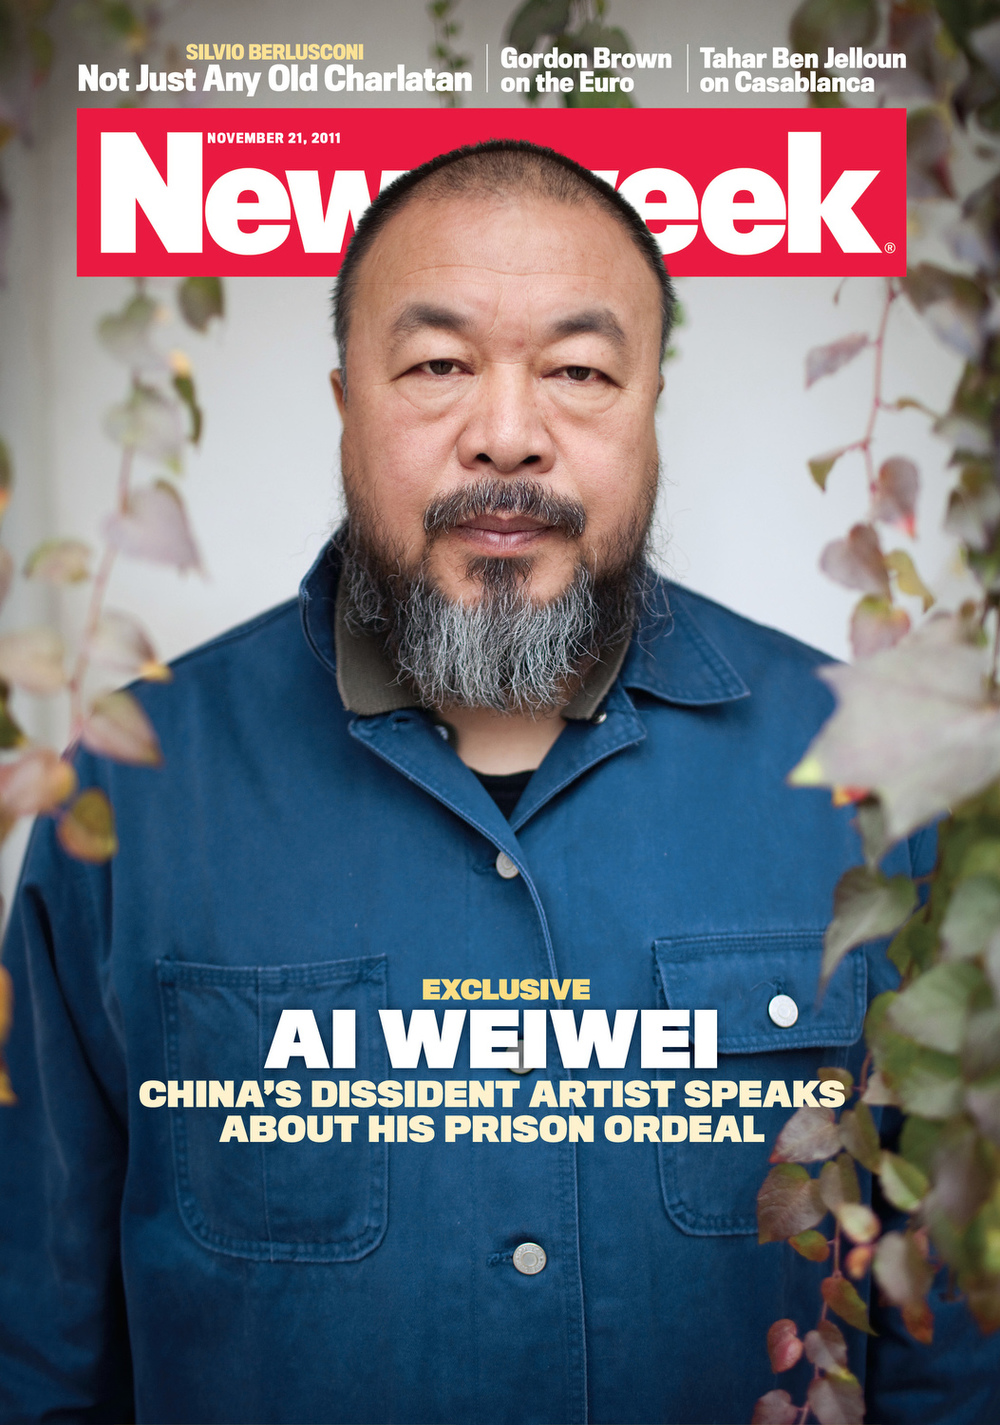 Newsweek aiww cover hires.jpg